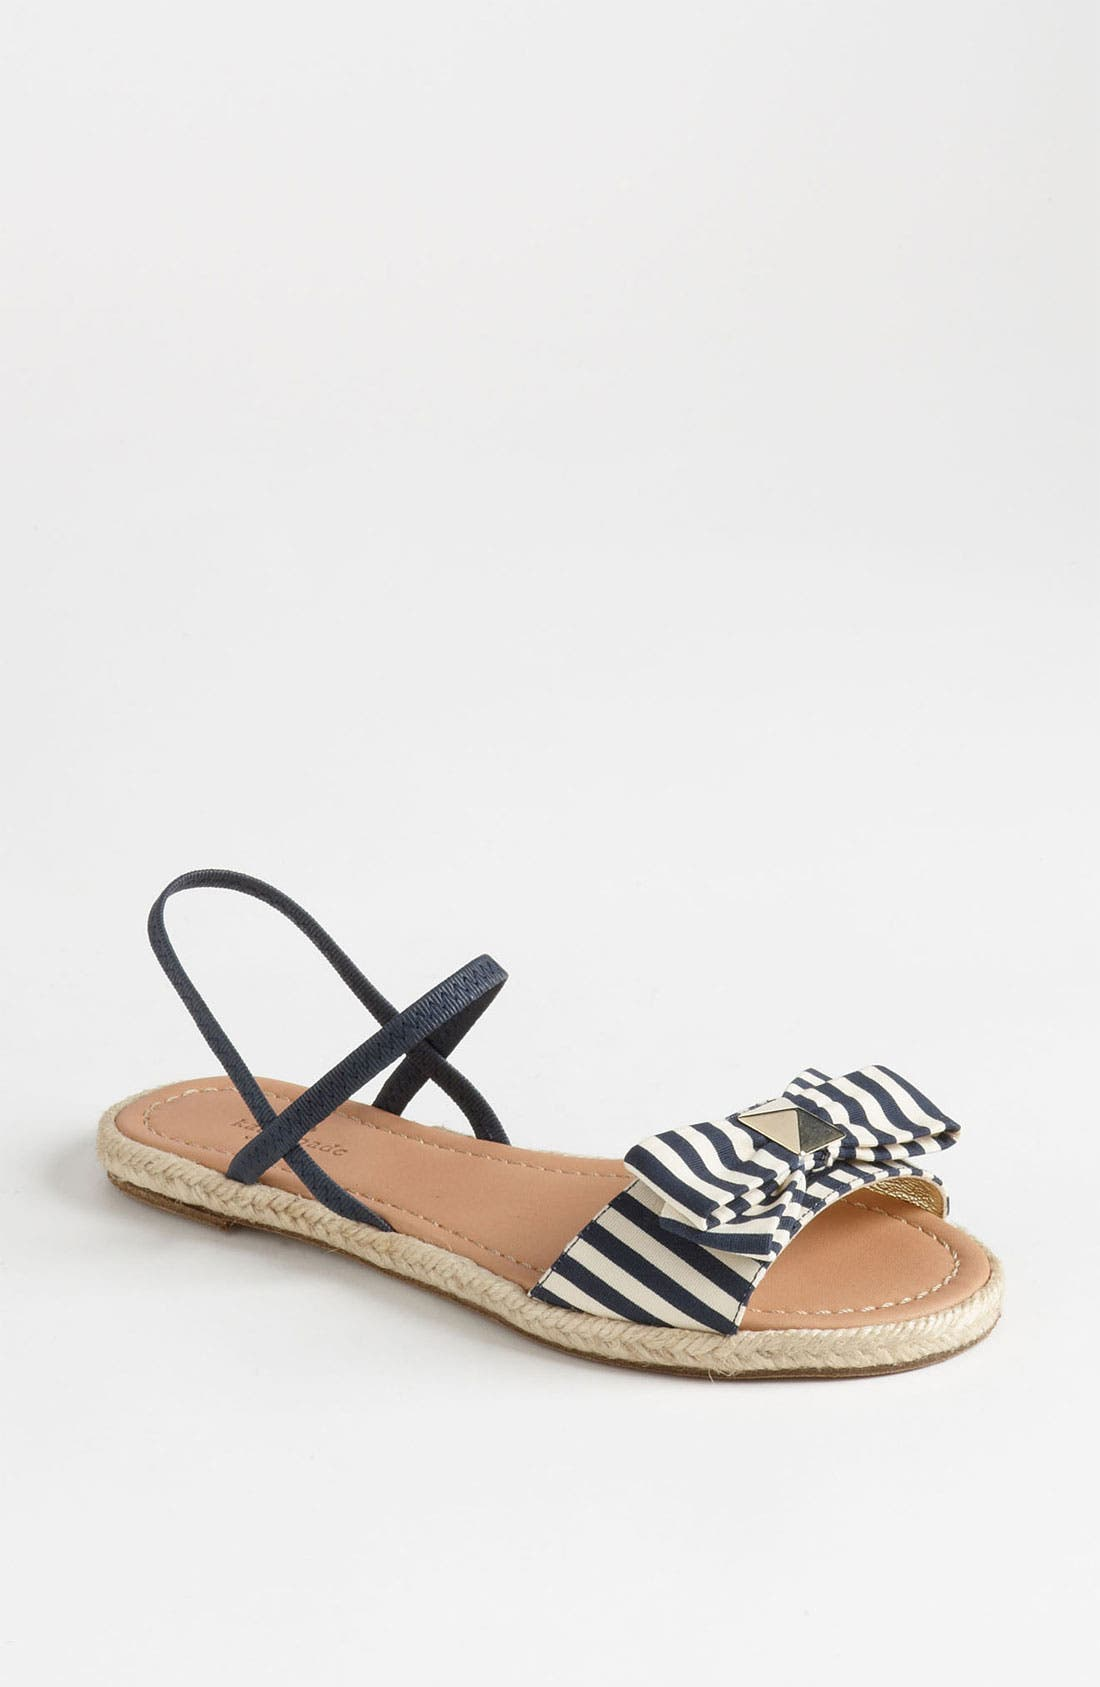 Main Image - kate spade new york 'cece' sandal